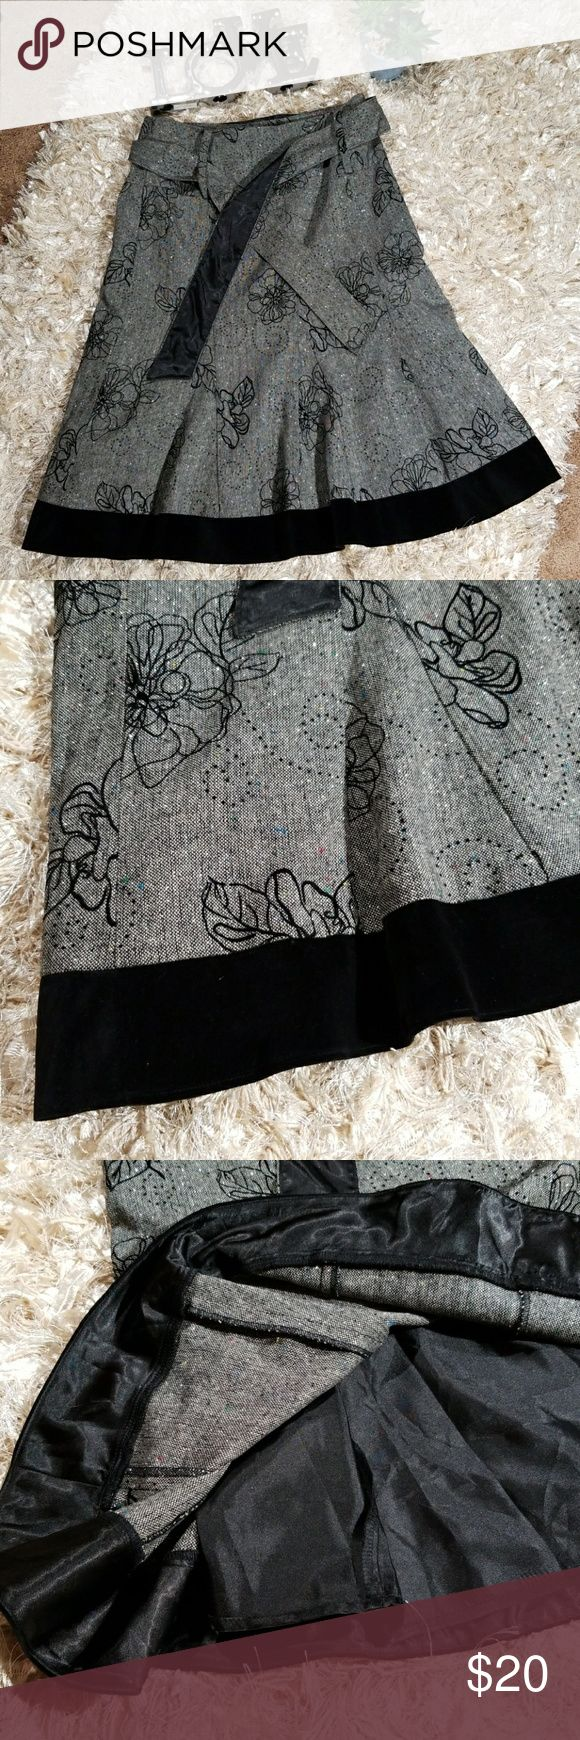 "ALI MILES Women's Skirt Gorgeous skirt with so much personality Has a shimmer effect with beautiful stitching Bottom hem is a black velvet Wide waistband with two sided belt Side zipper Flare bottom Lined Polyester/Wool  Waist 33"" Length 27"" Ali  Miles Skirts"